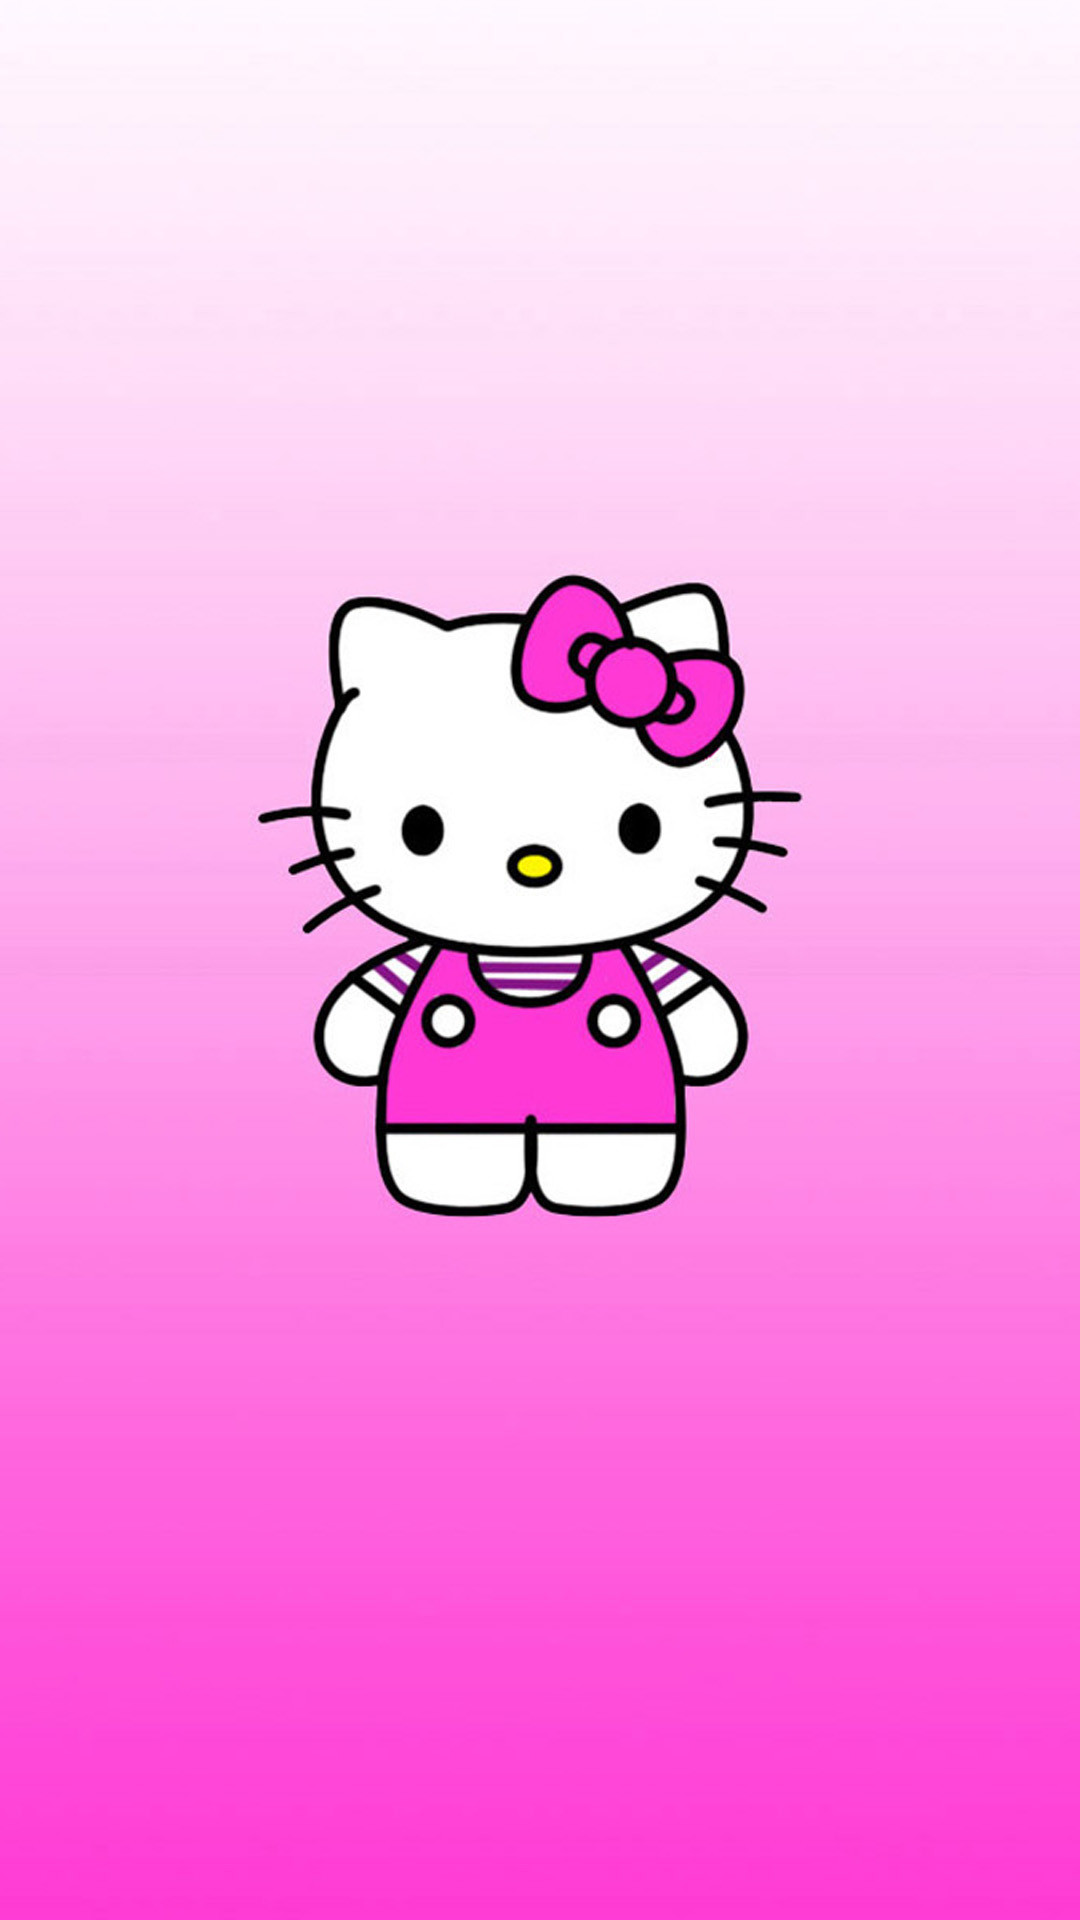 File attachment for Apple iPhone 6 Plus HD Wallpaper – Hello Kitty Images